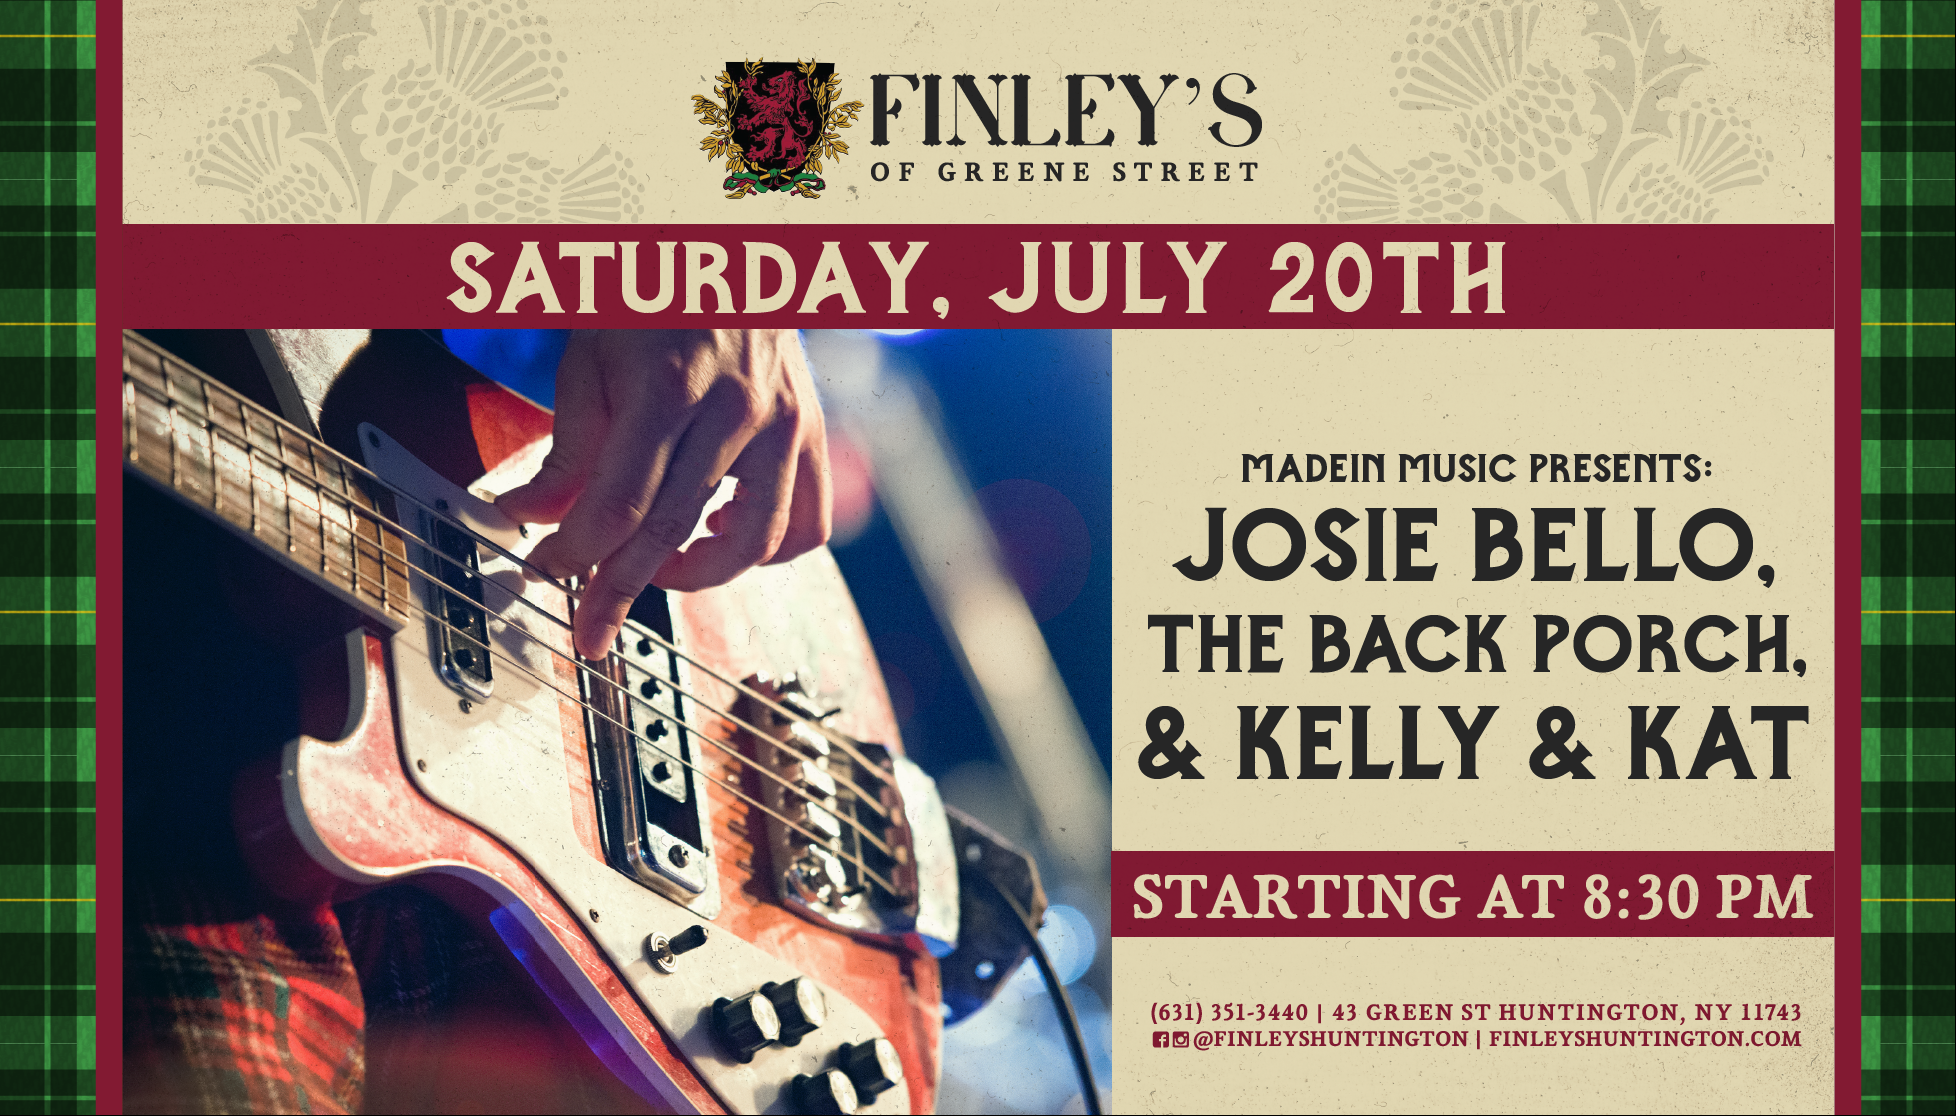 Flyer for MadeIn Music at Finley's with Josie Bello, The Back Porch and Kelly & Kat on July 20th at 8:30pm.